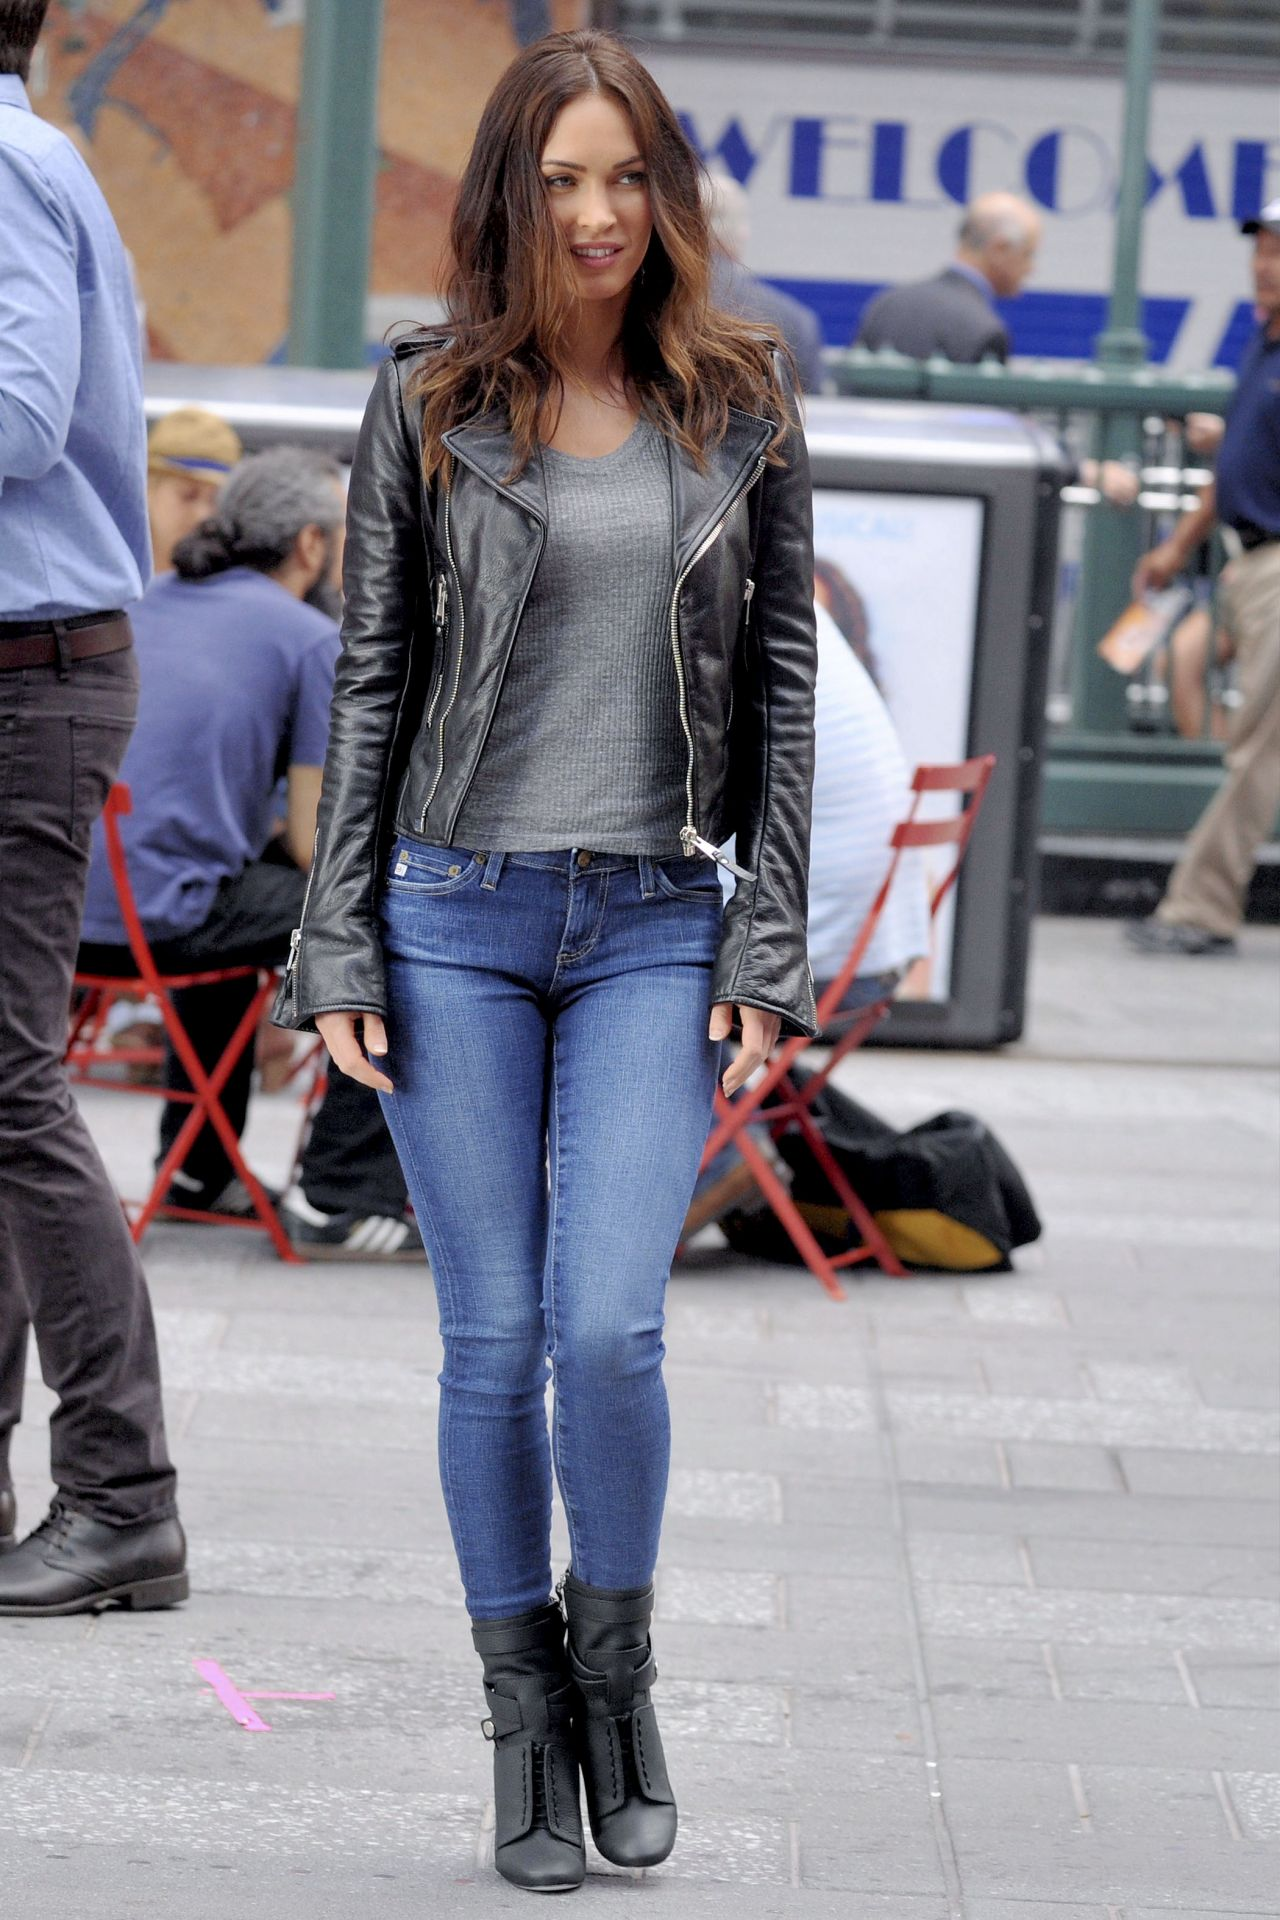 Megan Fox - Teenage Mutant Ninja Turtles 2 Set Photos ...